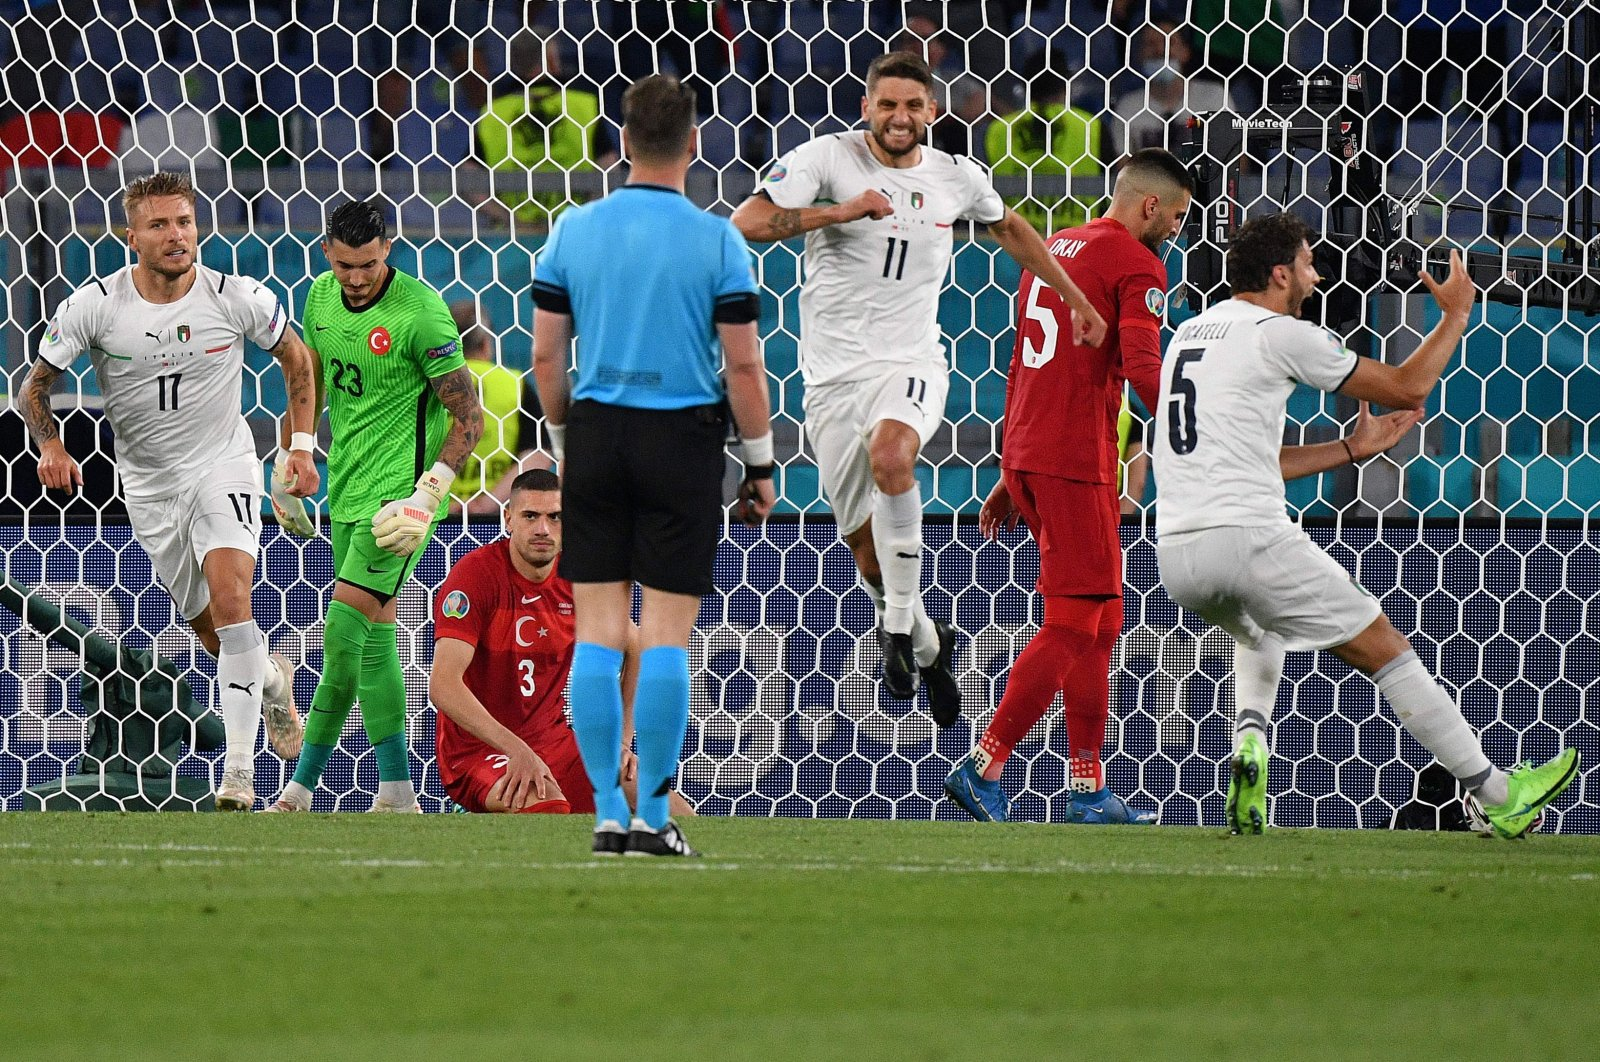 Italy's forward Domenico Berardi (C) celebrates their third goal scored by Italy's forward Lorenzo Insigne during the UEFA EURO 2020 Group A football match between Turkey and Italy at the Olympic Stadium in Rome on June 11, 2021. (AFP Photo)